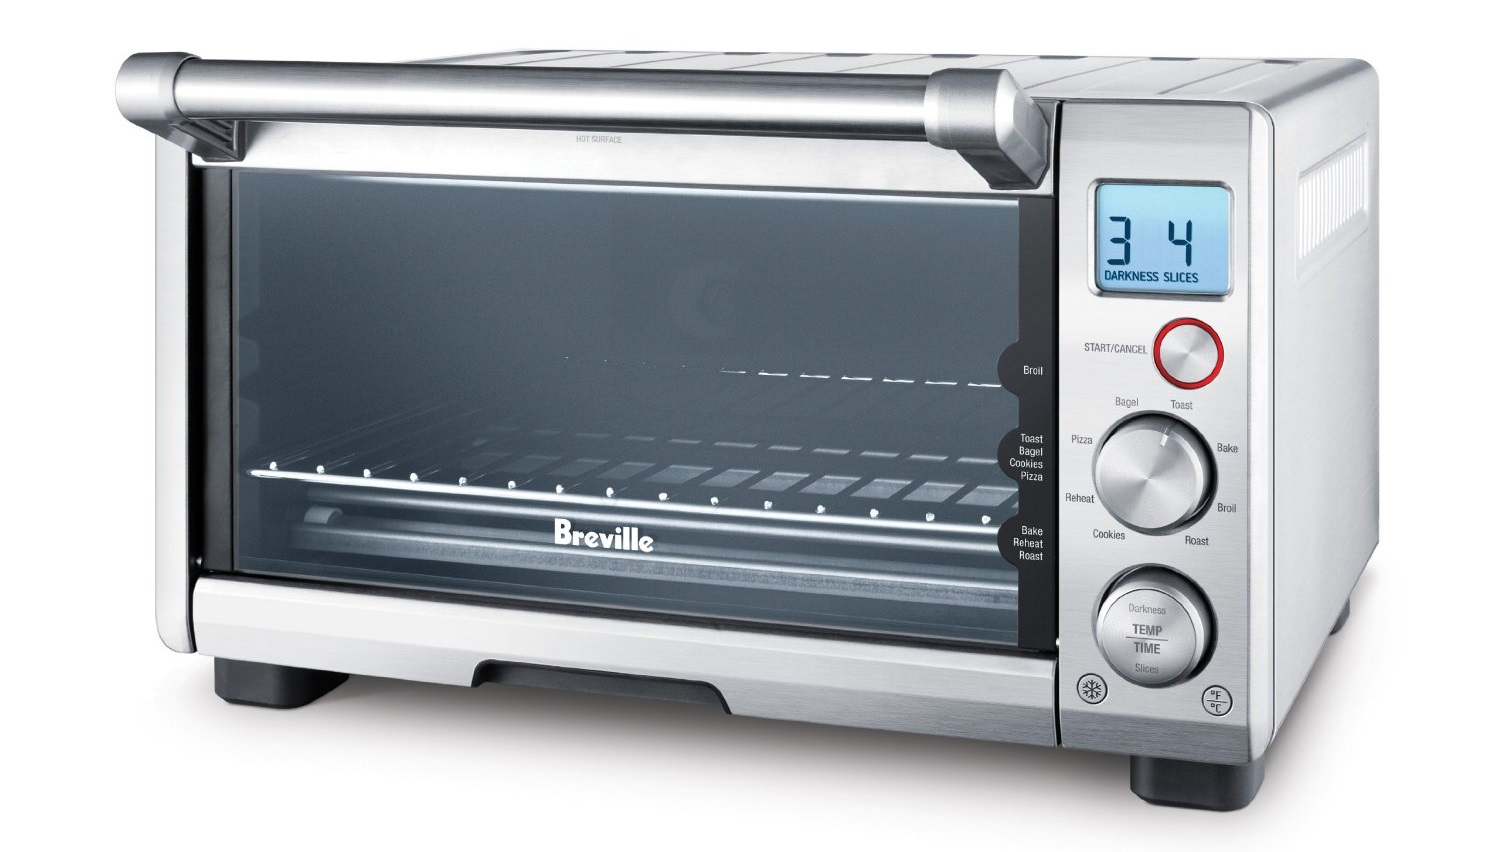 electronics iq element abt toaster with mini oven breville youtube at smart watch reviews